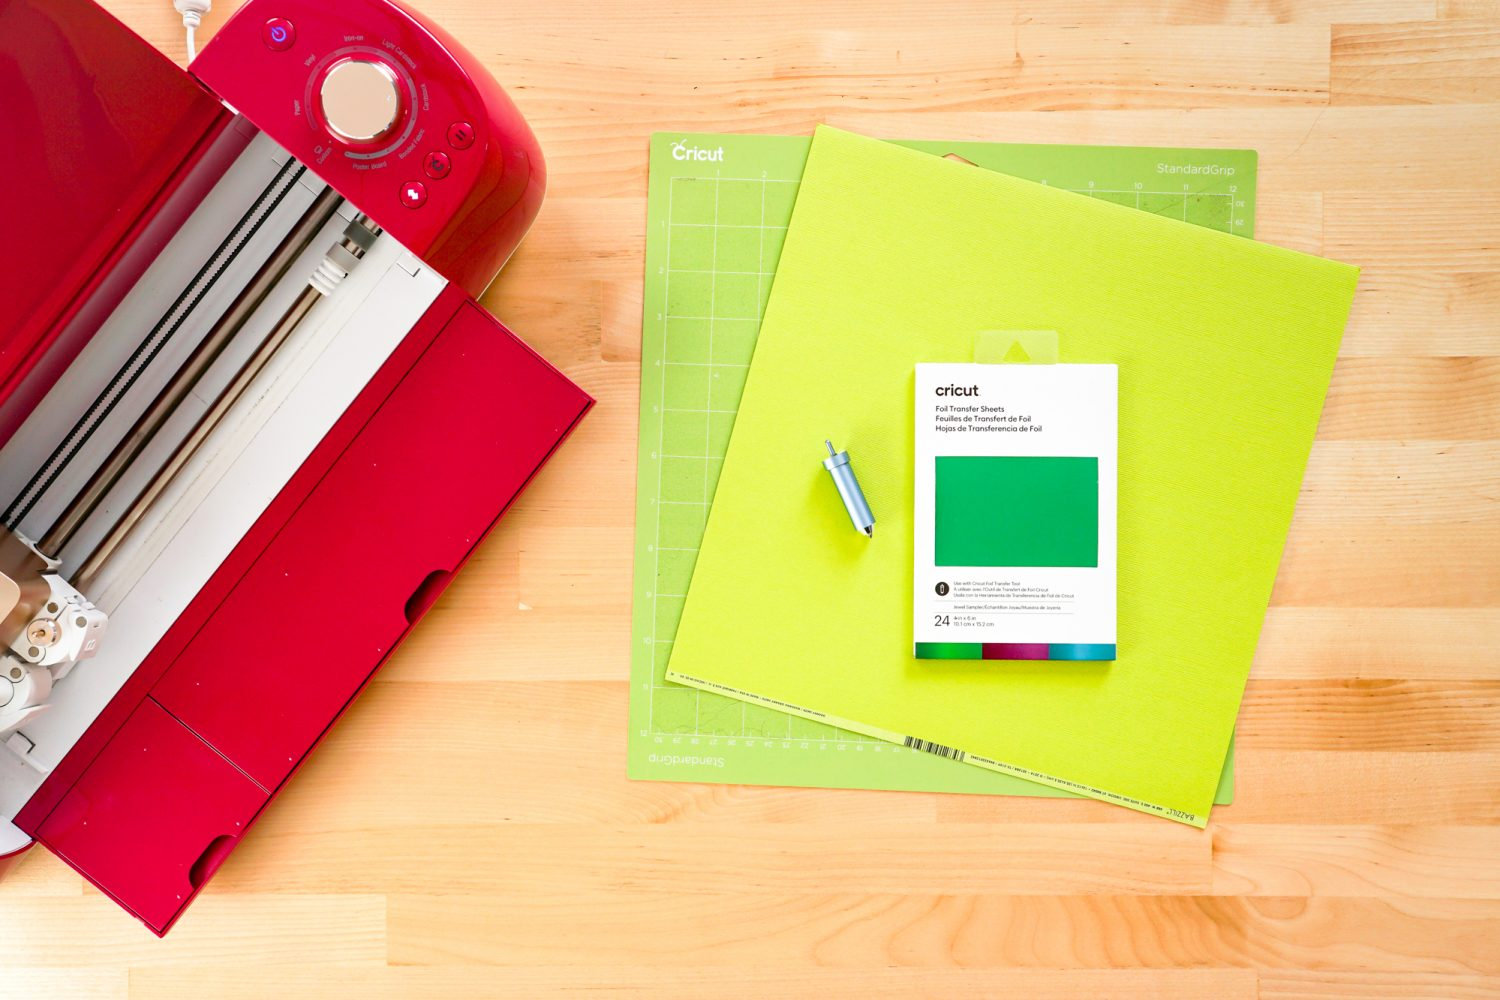 Supplies needed: Cricut, mat, cardstock, green foil, foil tool